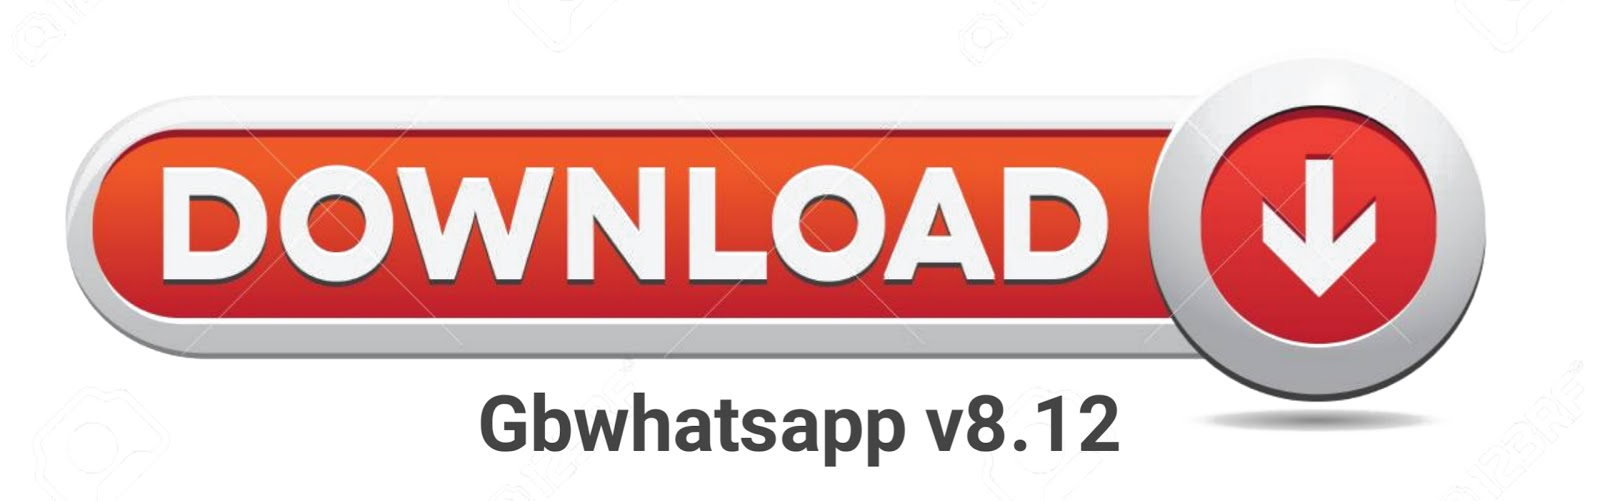 Latest Gbwhatsapp V8.12 download page